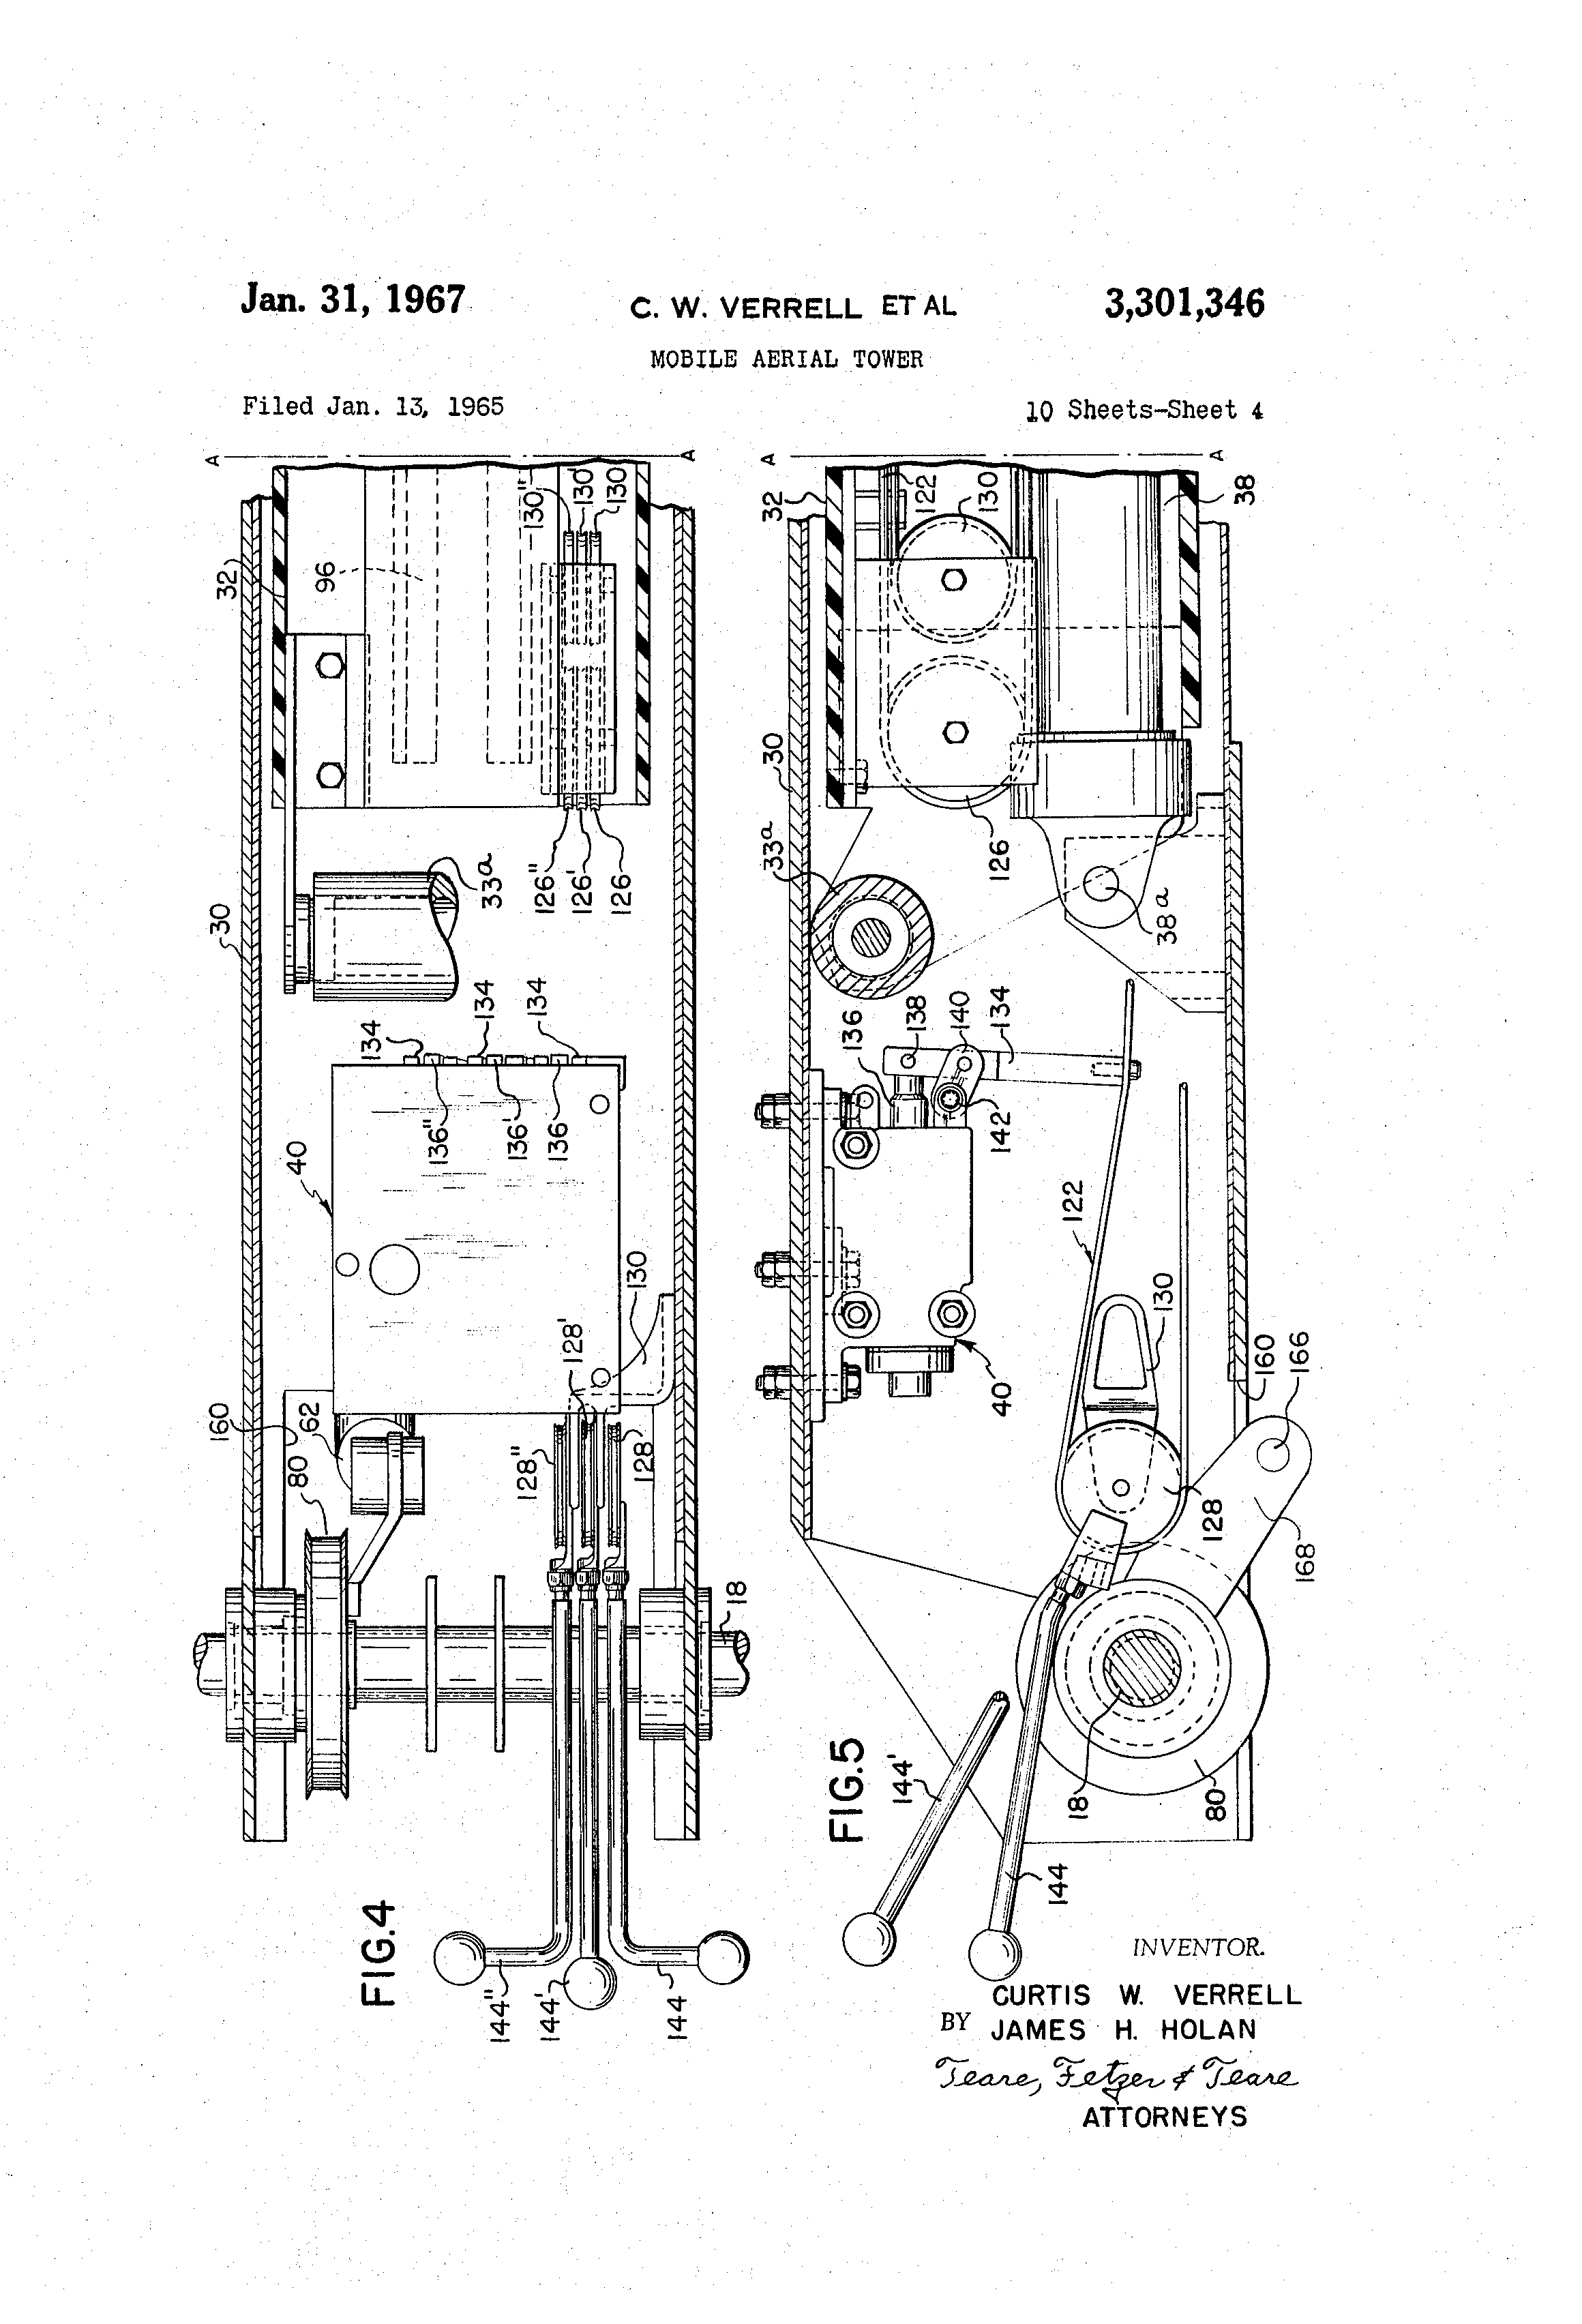 Telsta Boom Wiring Diagram 26 Images A28c Diagrams Us3301346 3 Patent Mobile Aerial Tower Google Patents Truck At Cita